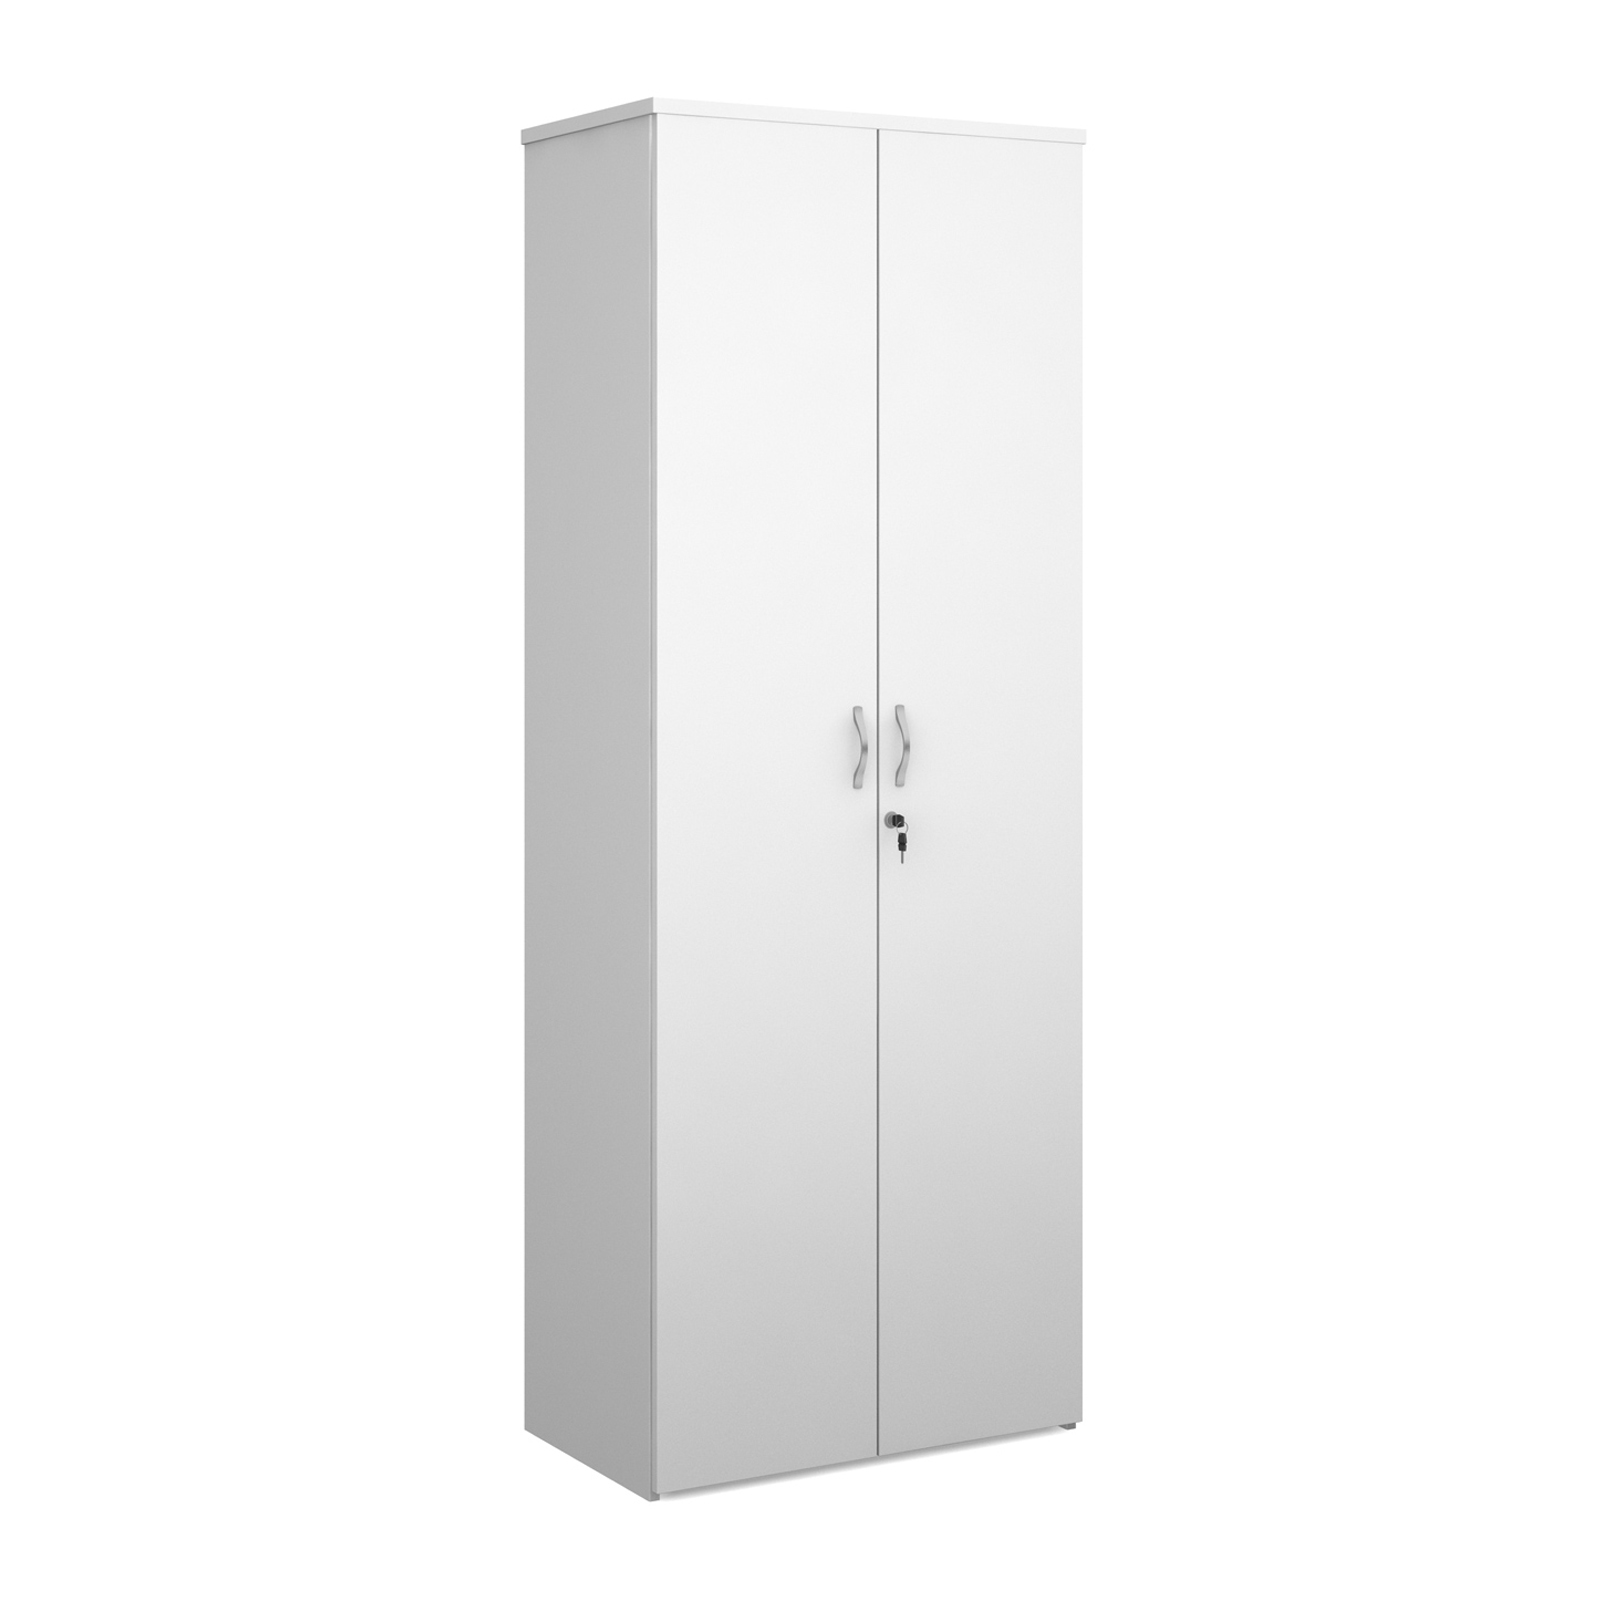 Over 1200mm High Universal double door cupboard 2140mm high with 5 shelves - white